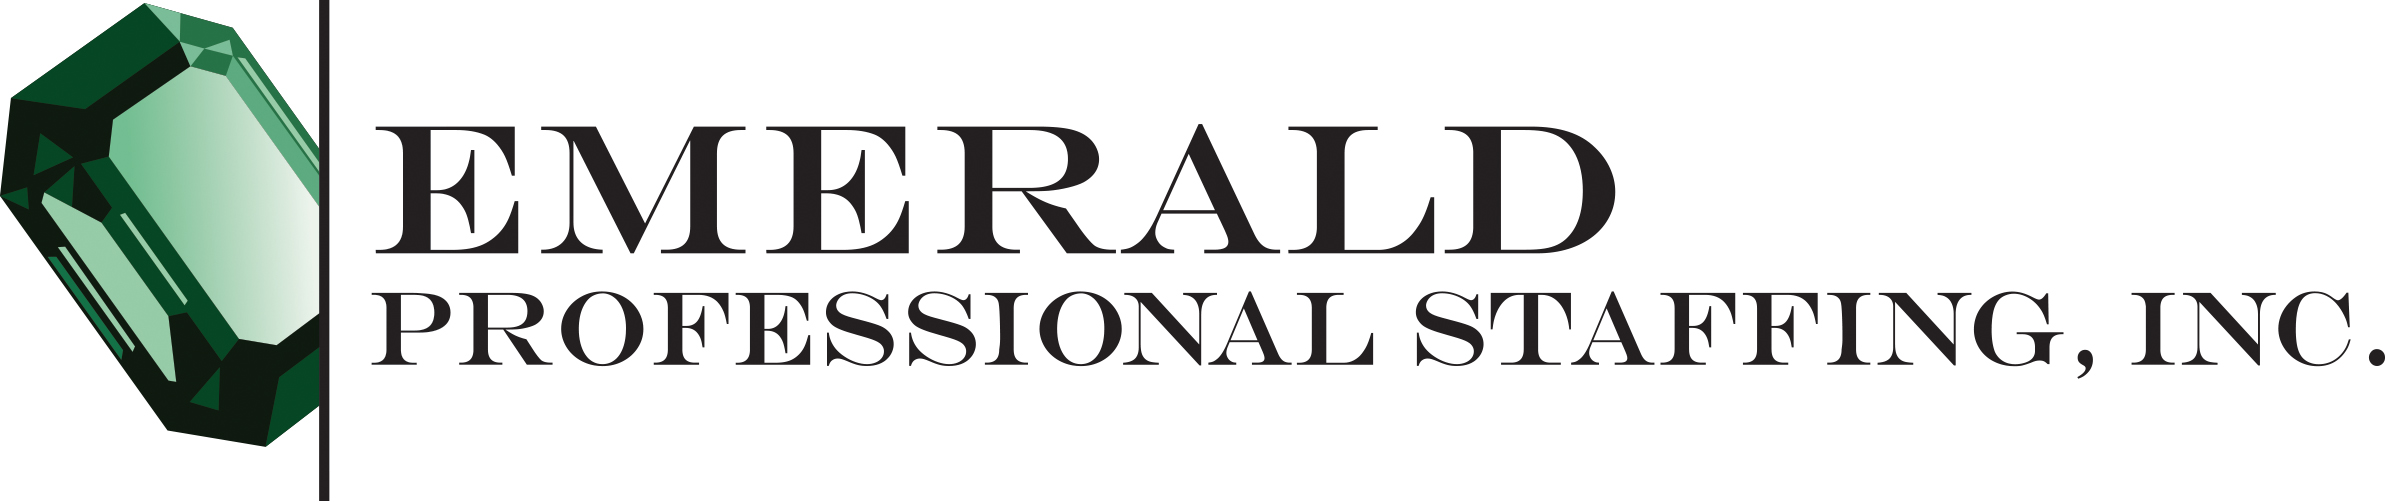 Emerald Professional Staffing logo